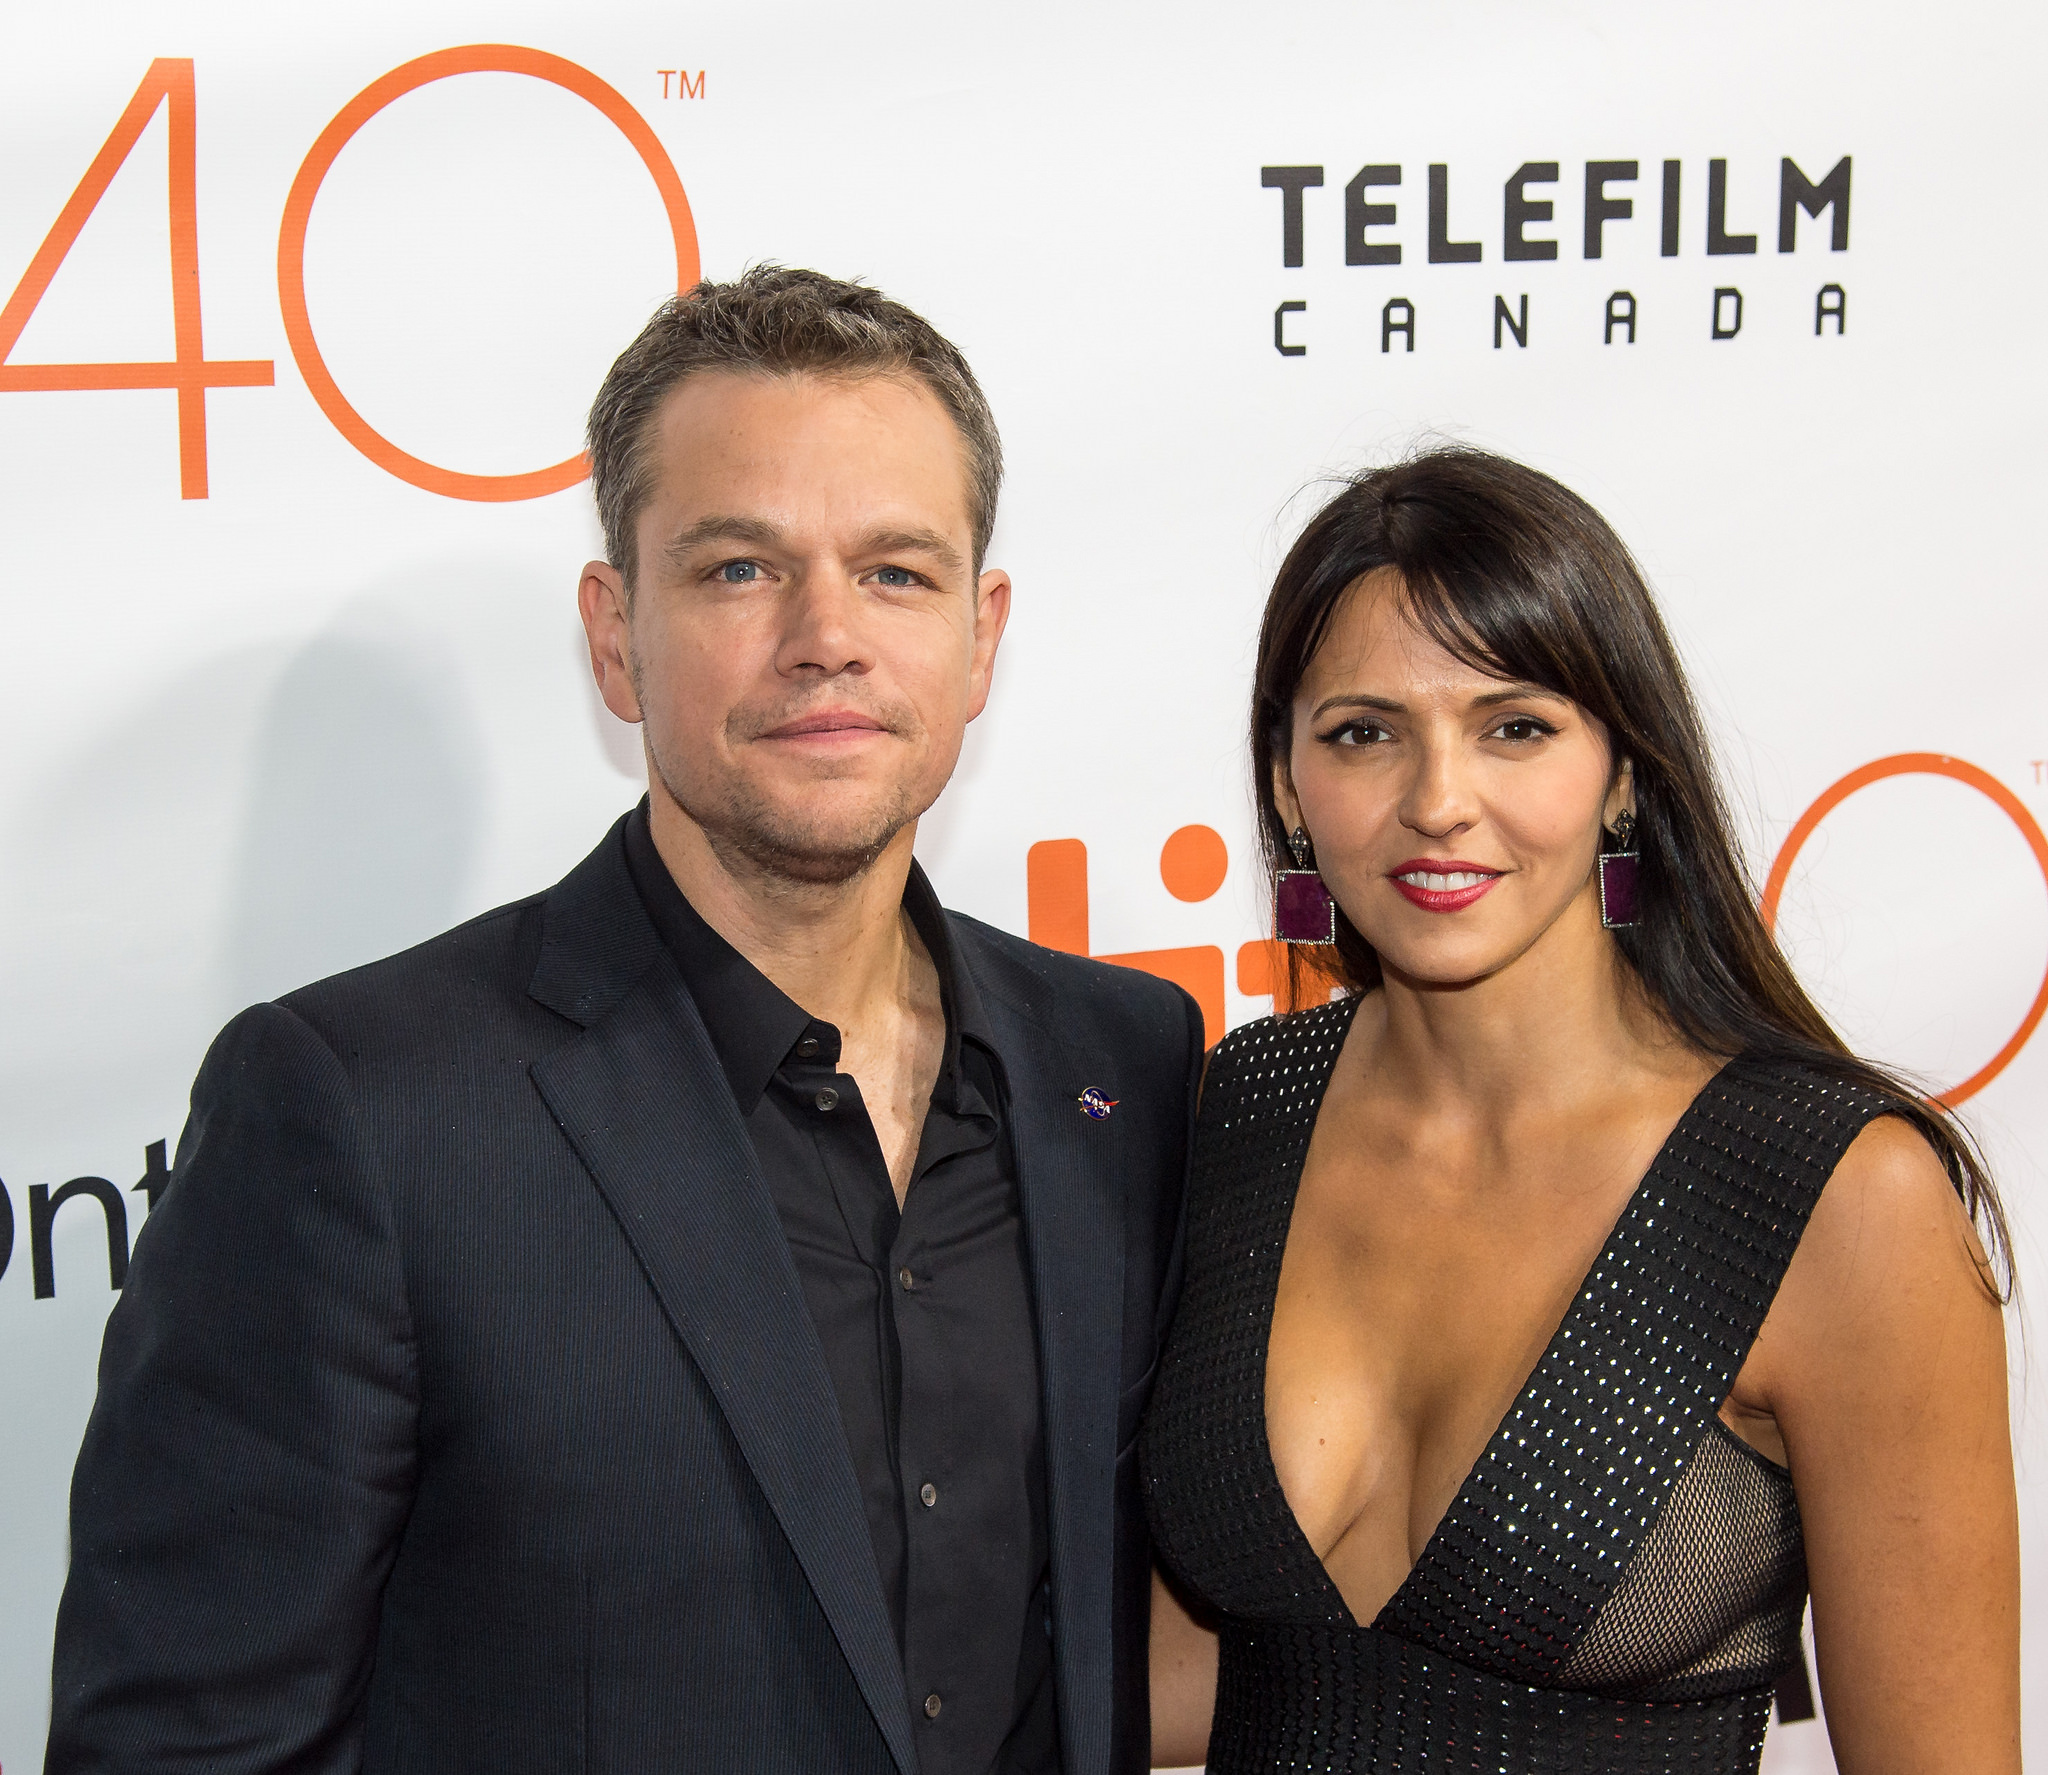 Actor Matt Damon and his wife at